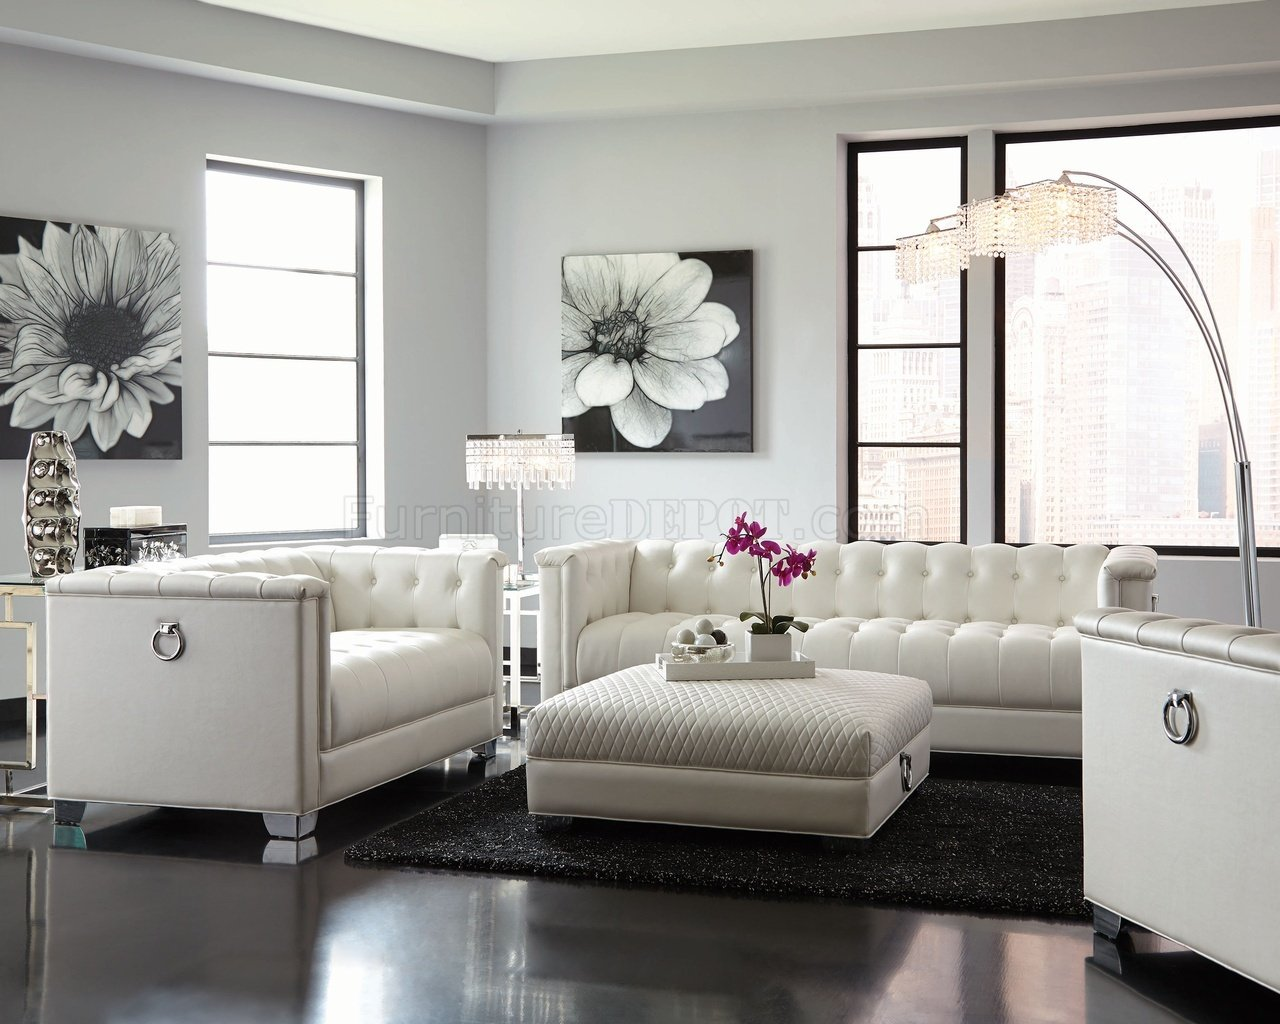 Chaviano Sofa In White Leatherette 505391 By Coaster W/Options